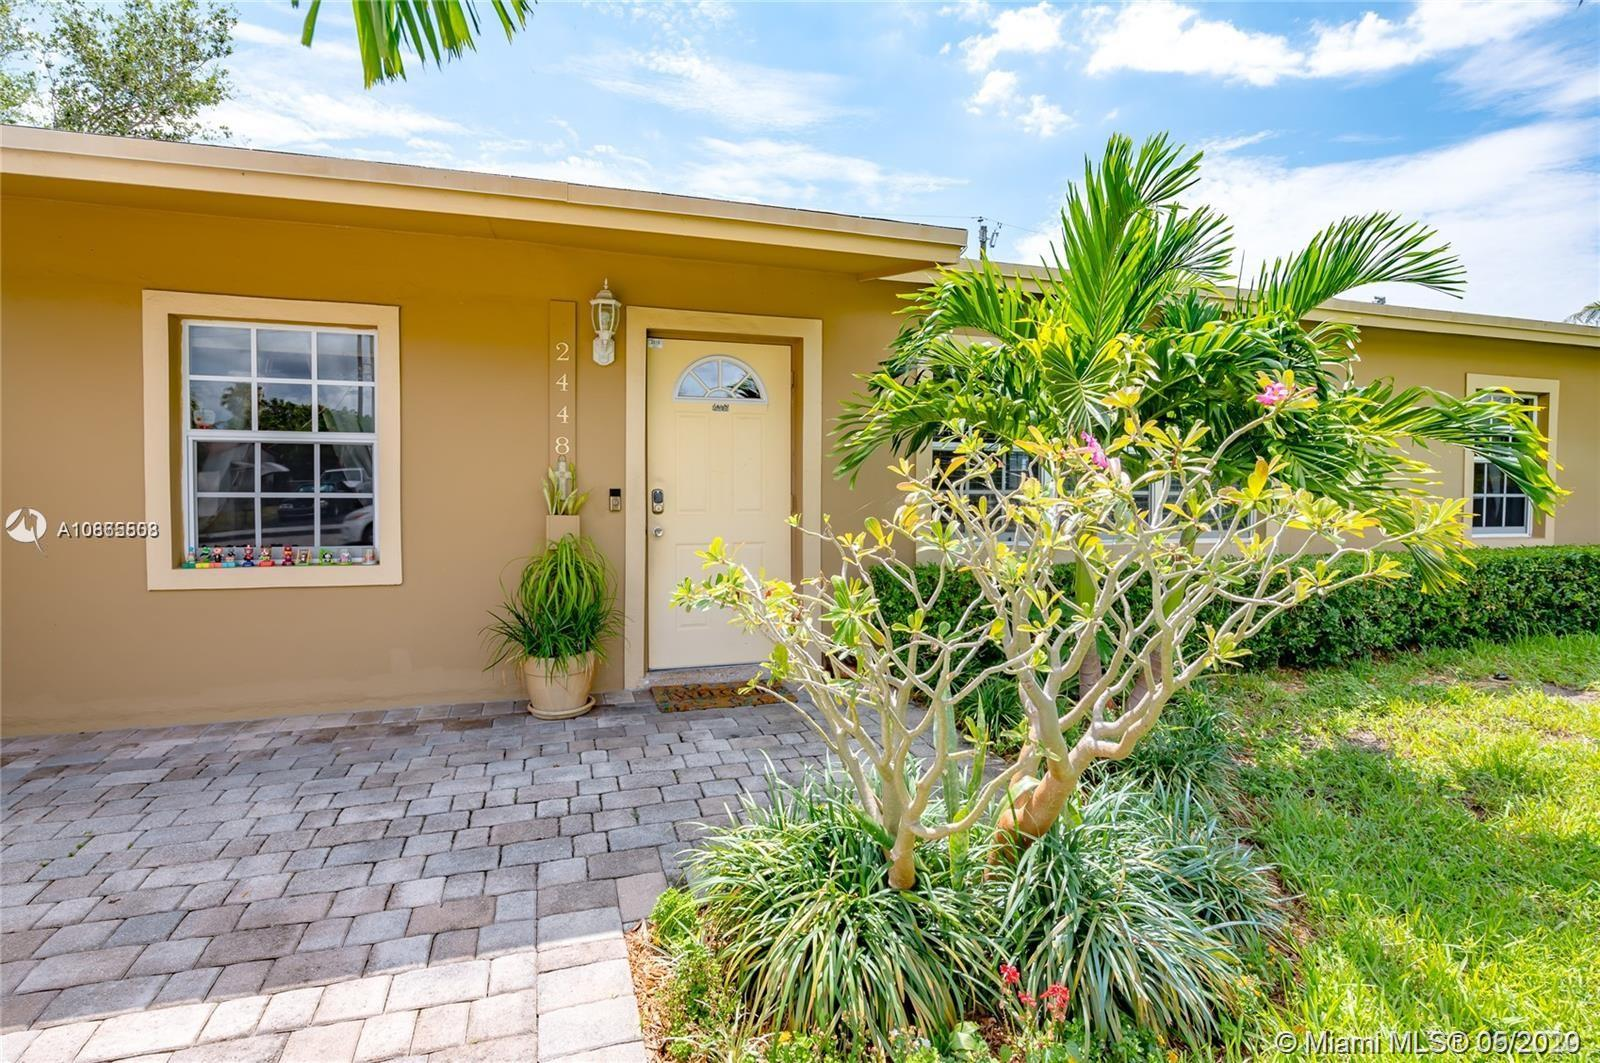 Discover this beautiful and family-oriented community of Collier Manor. This great neighborhood is only 10 minutes from the amazing Pompano beach. This adorable and exclusive home has many upgrades, such as solar panels, a new water heater, and more. This home has everything that you are looking for: a brand new kitchen with granite backsplash and new countertops, new appliances, and brand new impact doors and windows, new flooring. There is a paved patio area with an above ground swimming pool, fully fenced in with a brand new sprinkler system. This home is conveniently located at walking distance to Pompano Beach Centre, Premium Pompano Golf course, restaurants, movies, & shopping. Make your appointment today before this beauty sells. ATTENTION INVESTORS*CITY ZONING APPROVED FOR AIRBNB*